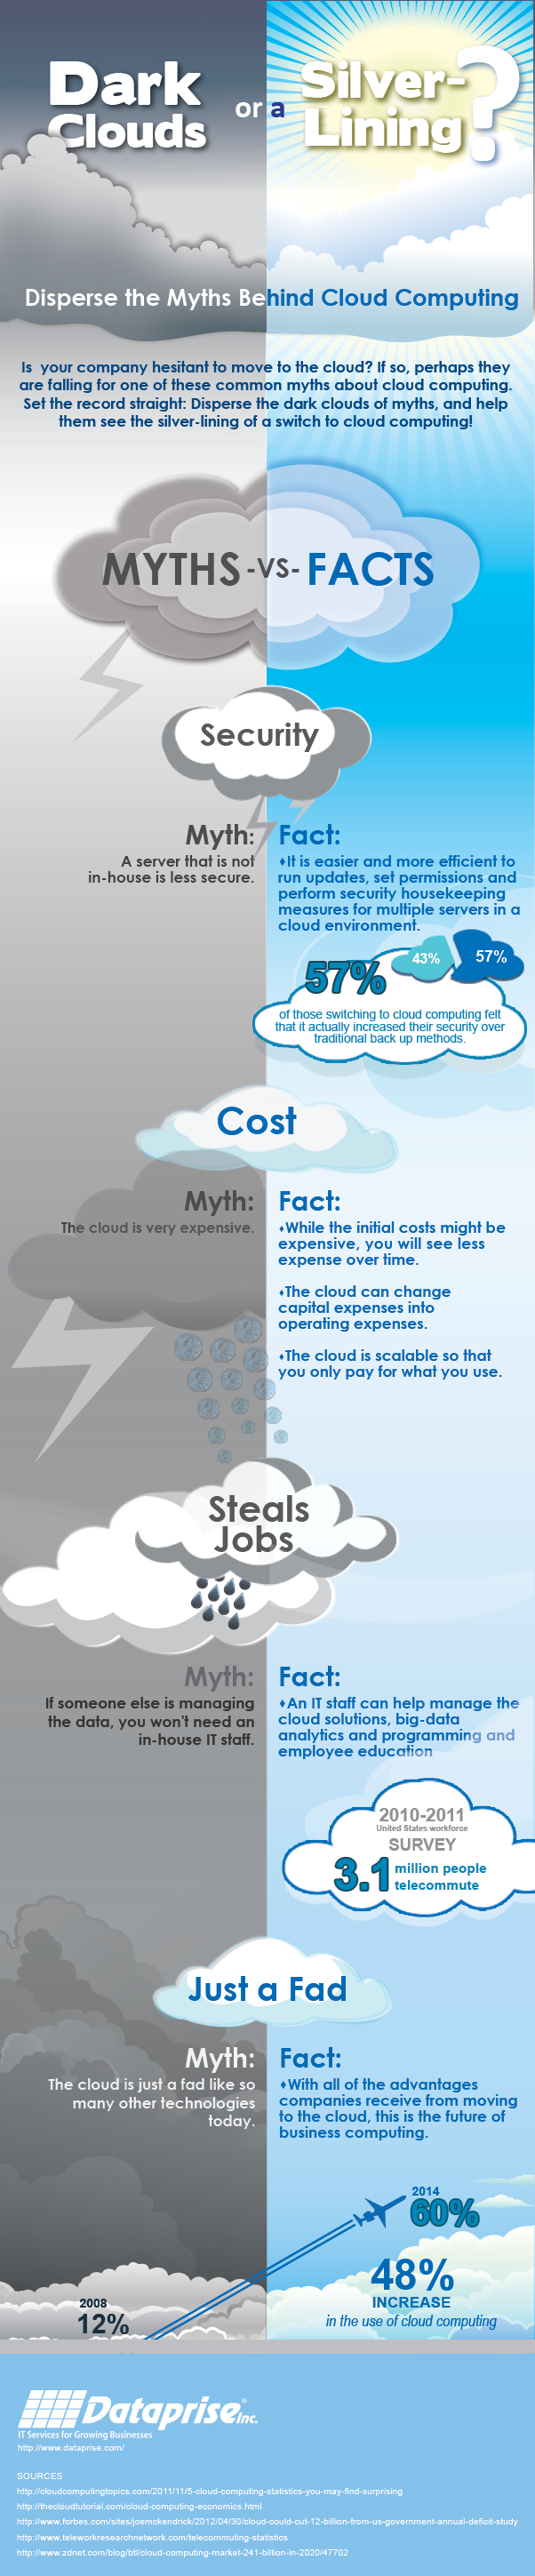 4 Myths about Cloud Computing and Why Theyâre Wrong - Image 1